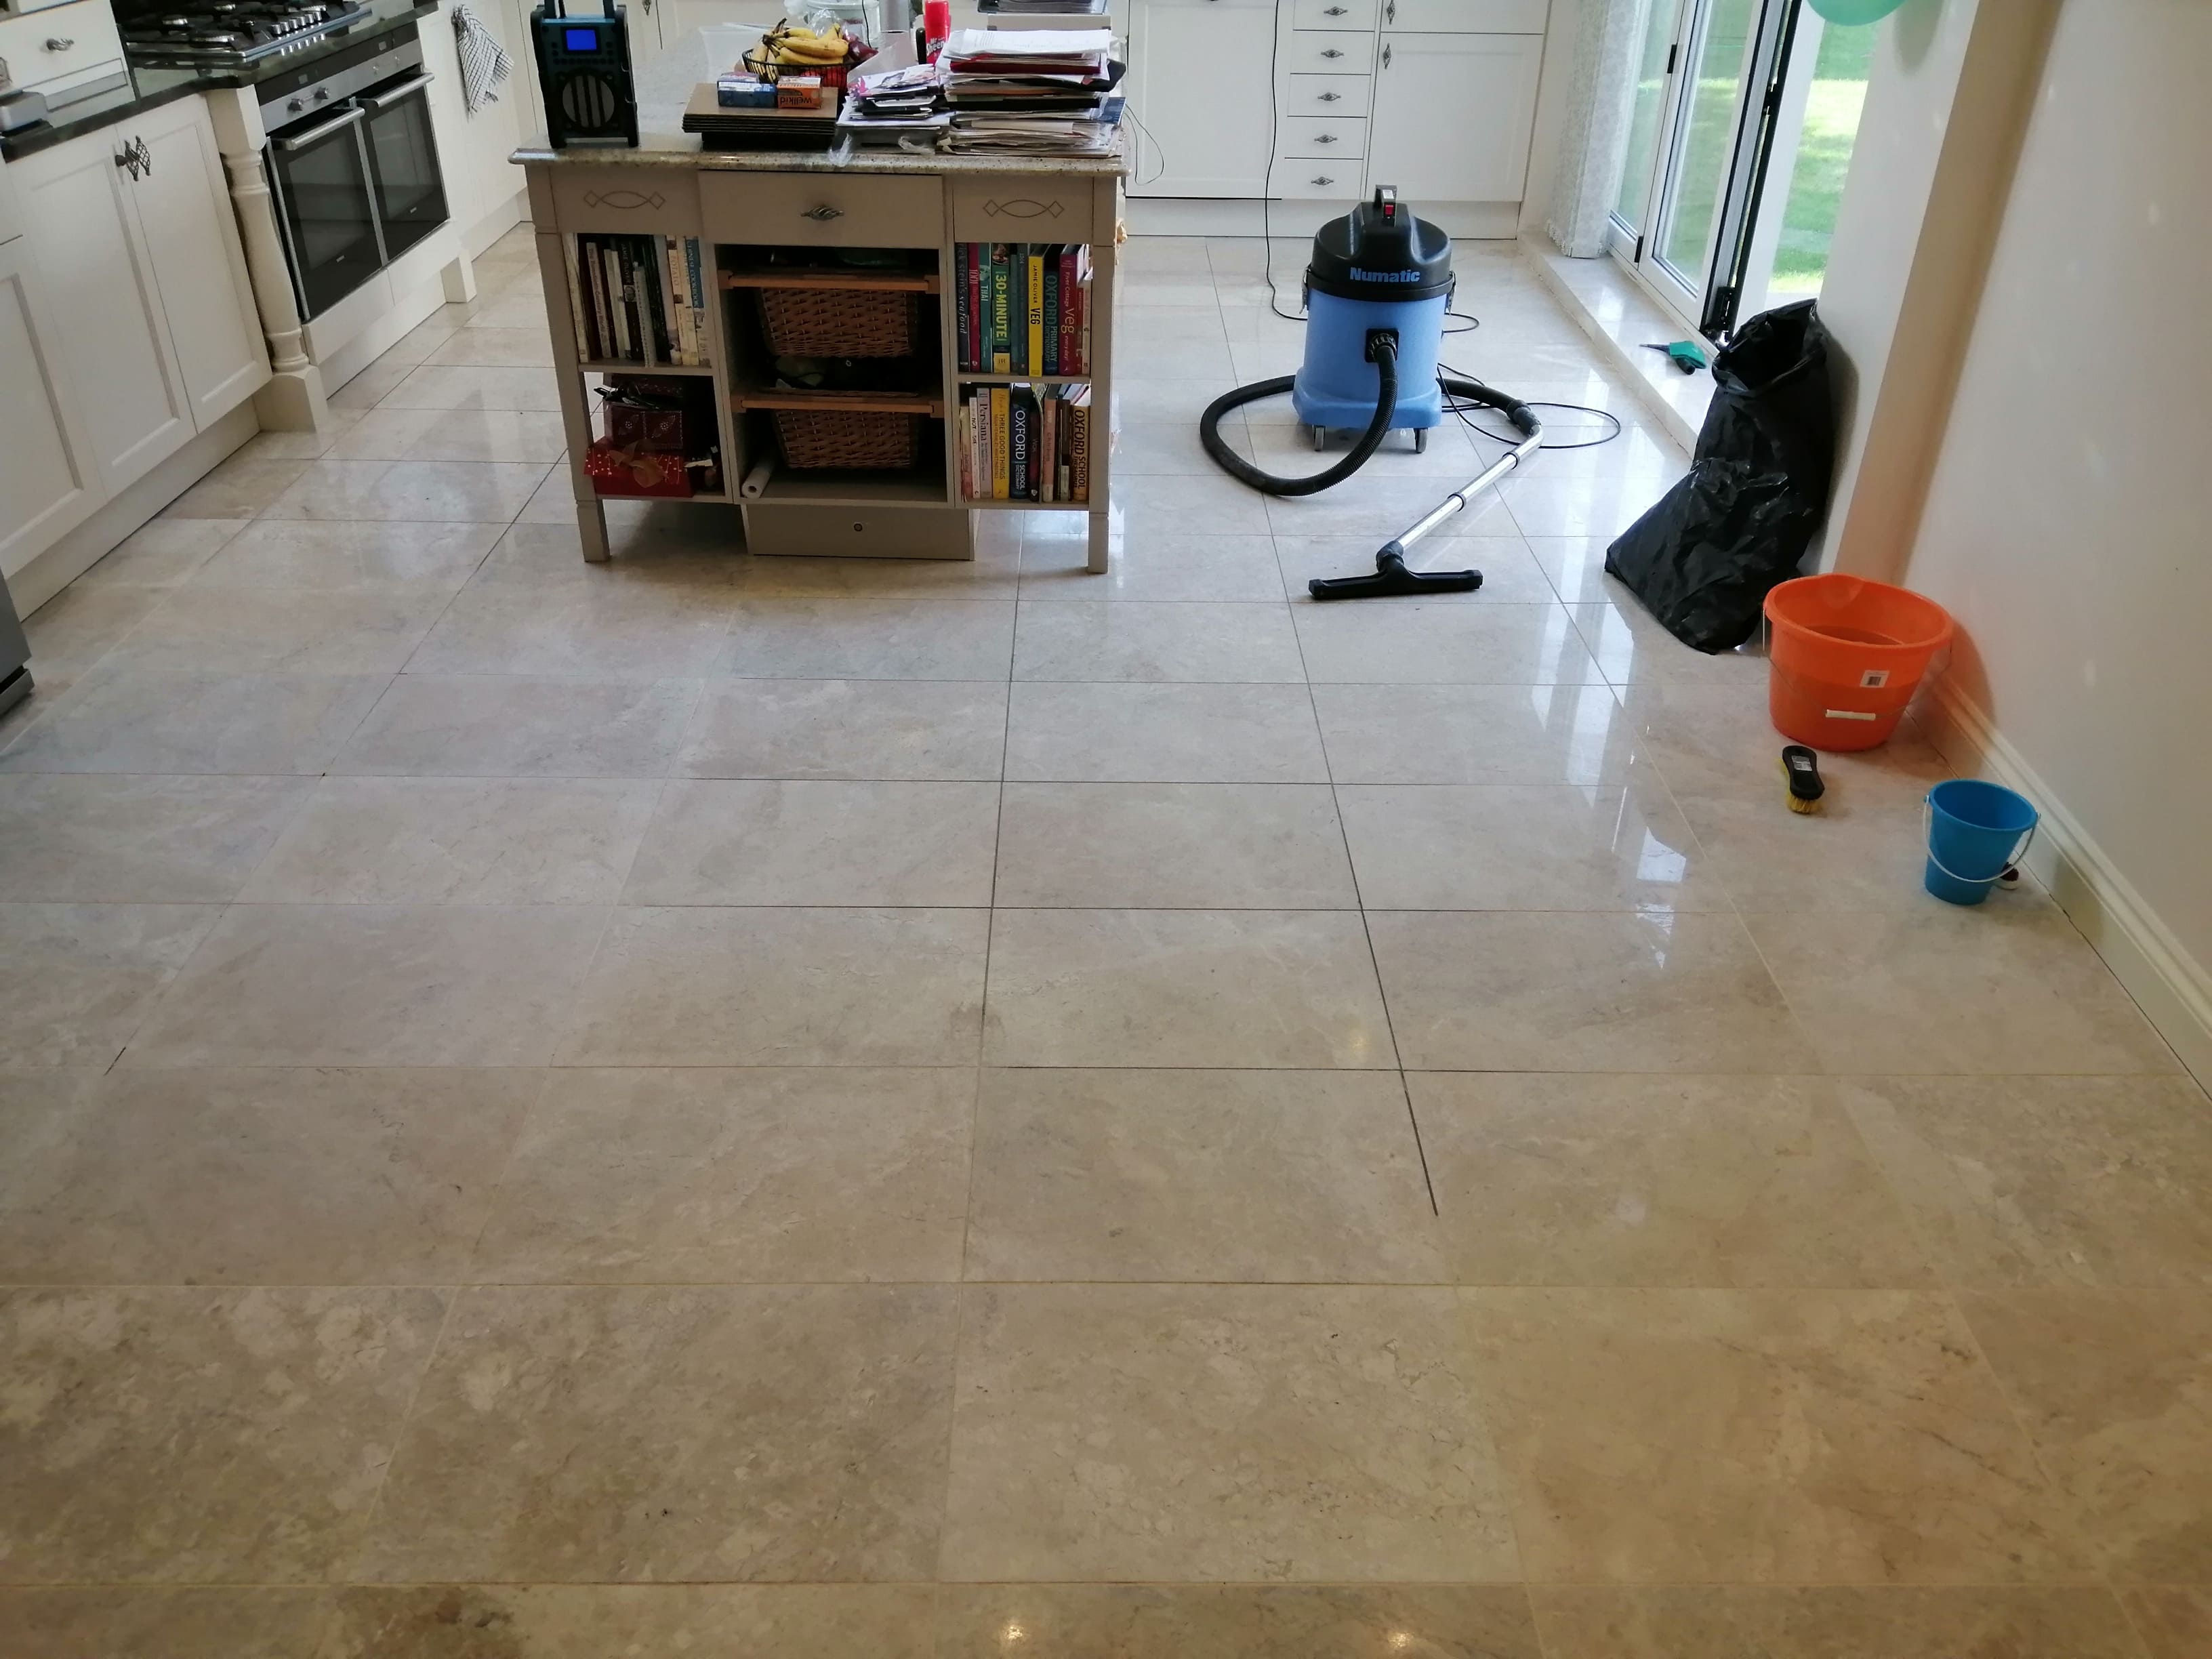 Marble Kitchen Floor During Grout Cleaning Cardiff